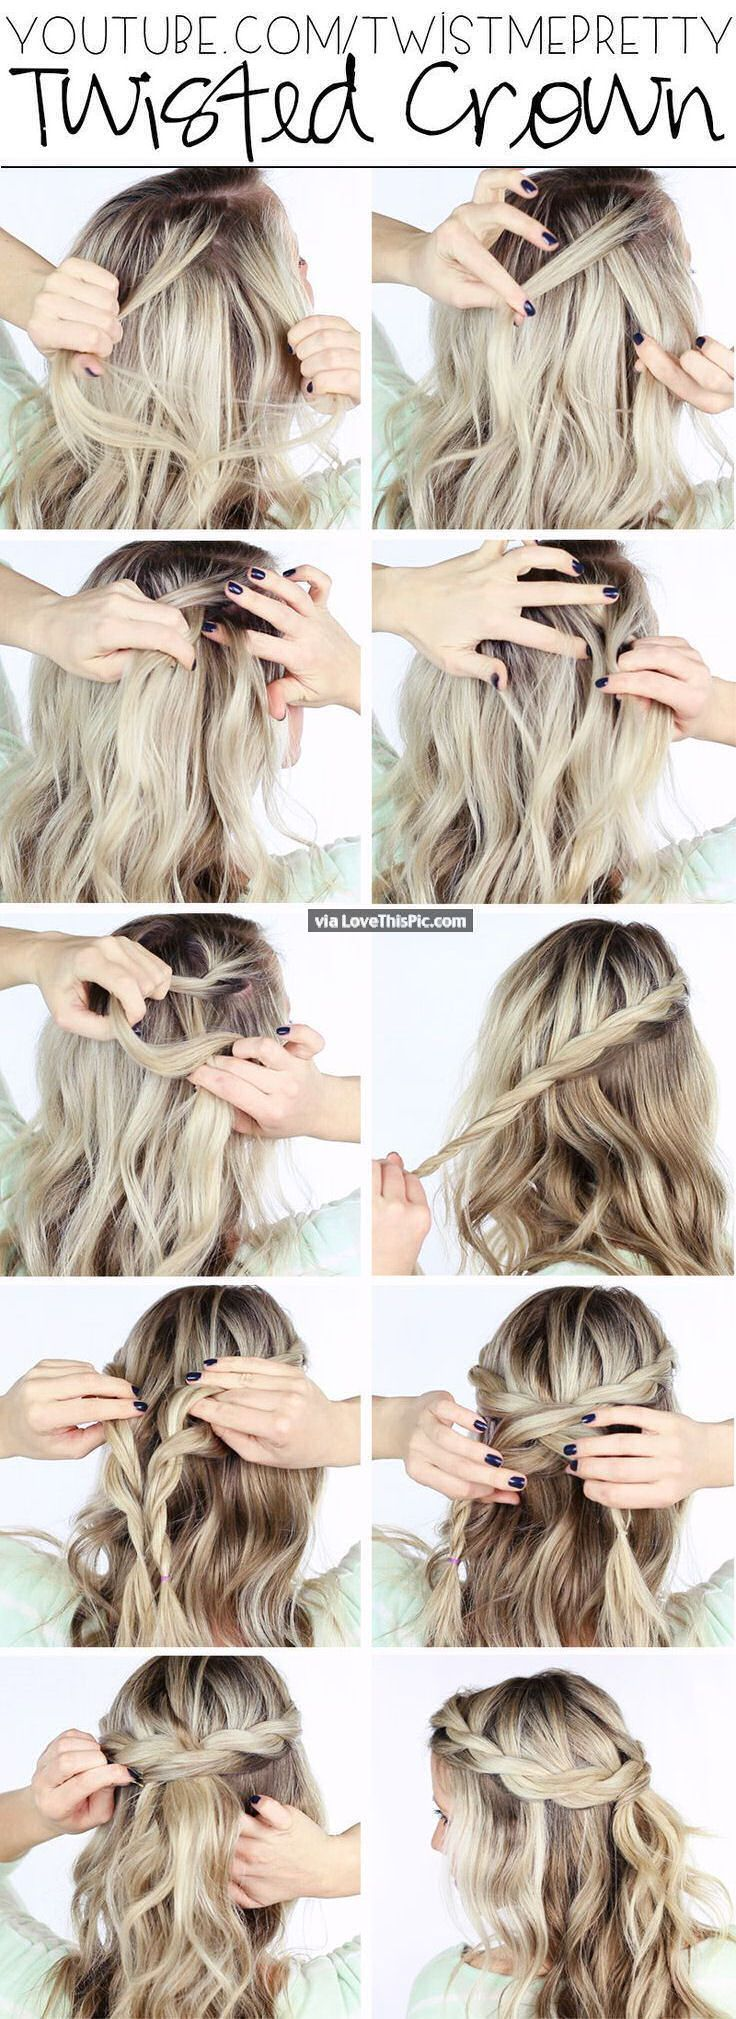 Diy Messy Bun Pictures Photos And Images For Facebook Tumblr Pinterest And Twitter Hair Styles Long Hair Tutorial Long Hair Styles